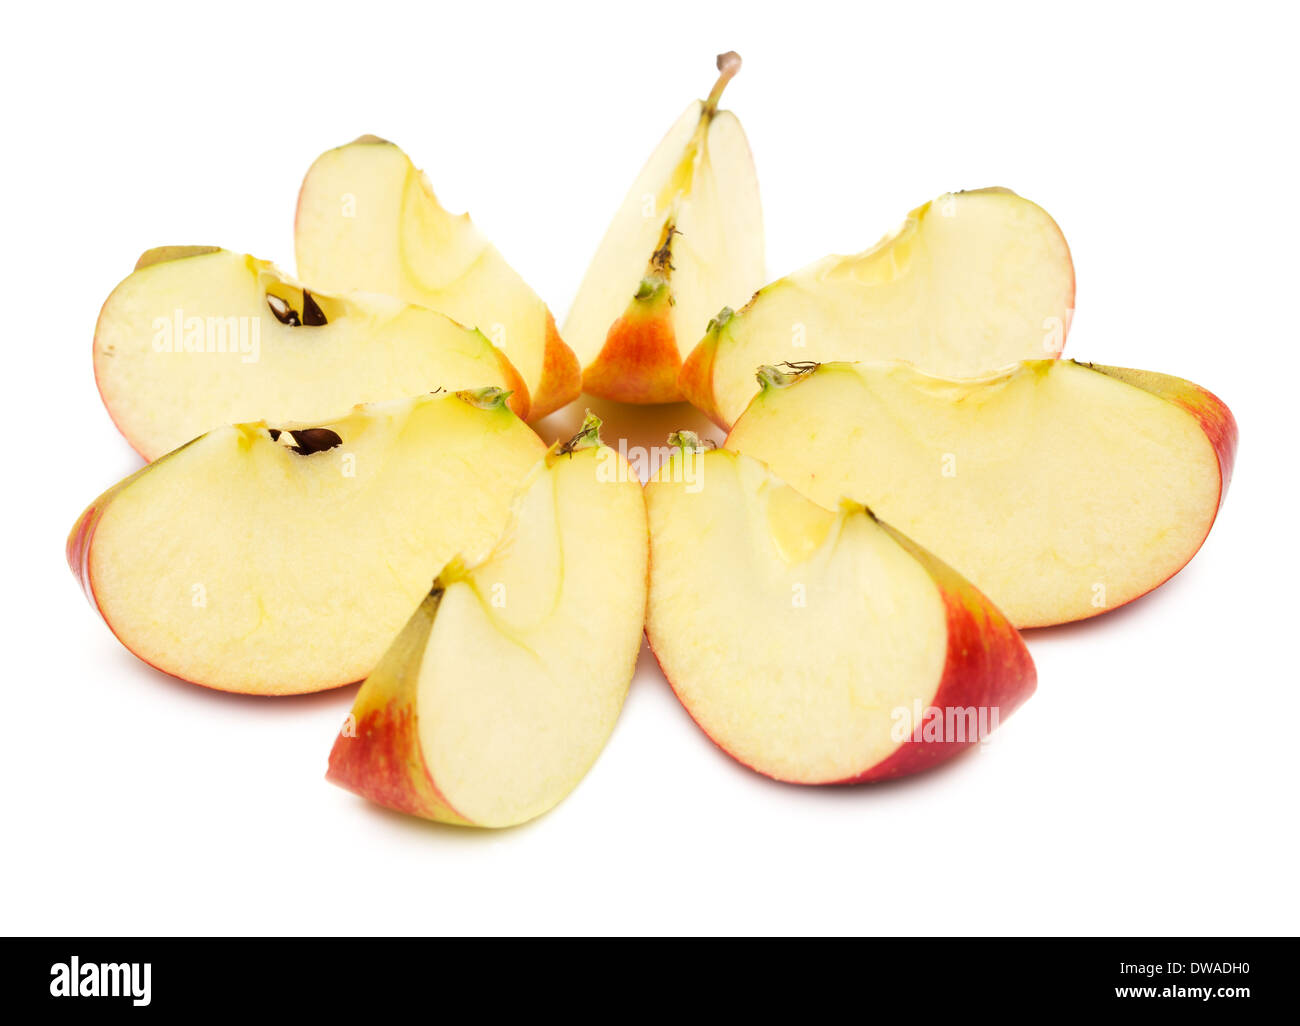 Sliced red apple, showing core. Isolated on white background. - Stock Image